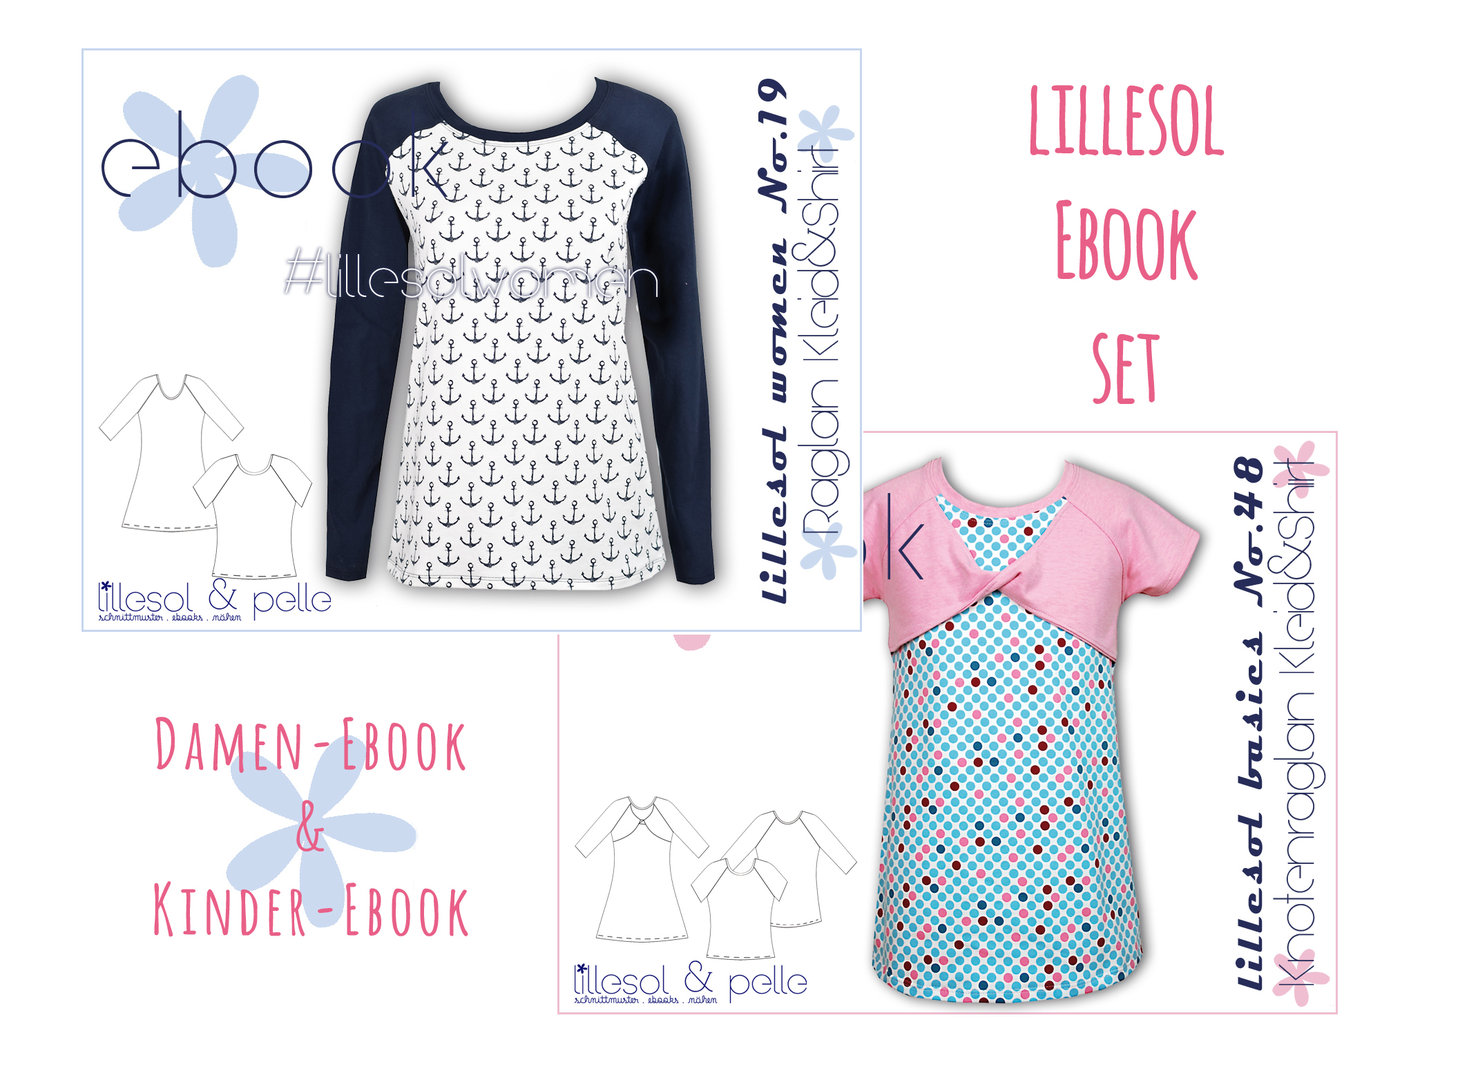 lillesol ebook set basics No.48 und women No.19